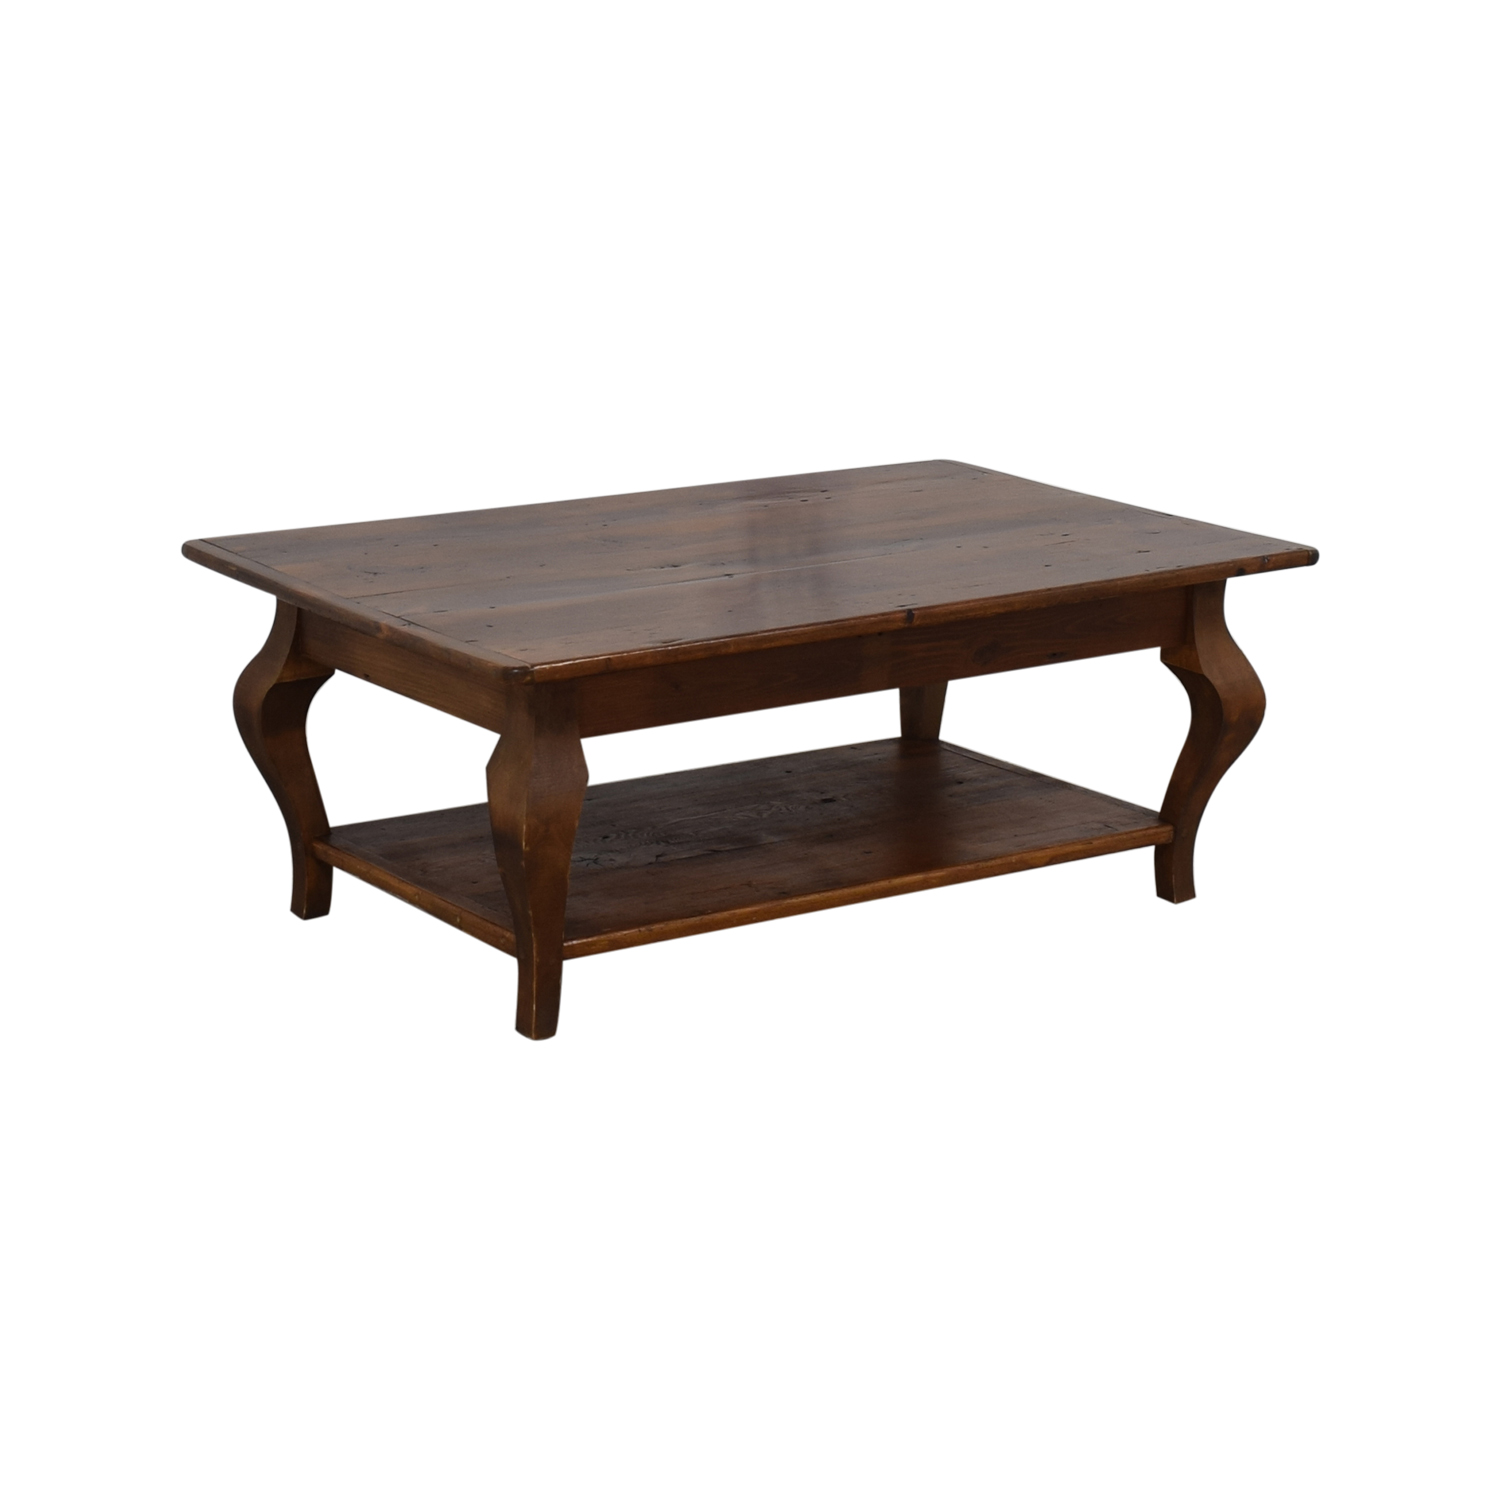 Country Willow Silverlake Coffee Table with Cabriole Legs / Coffee Tables